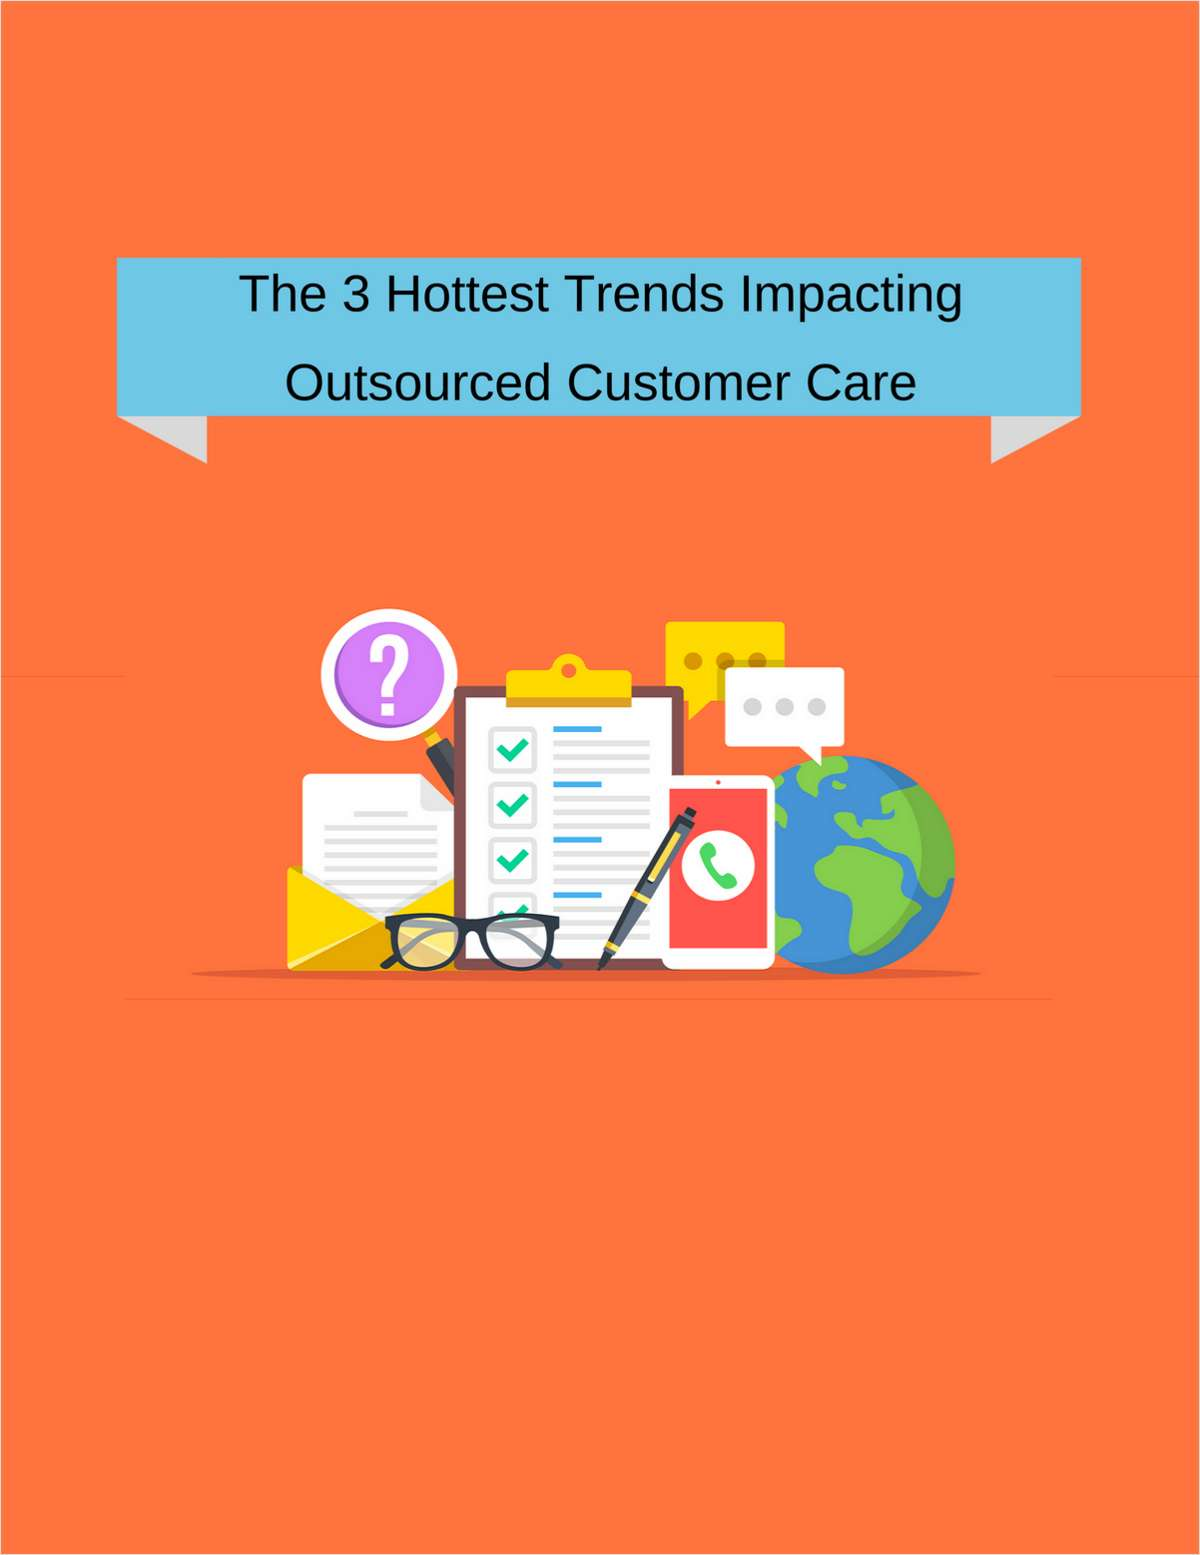 The 3 Hottest Trends Impacting Outsourced Customer Care